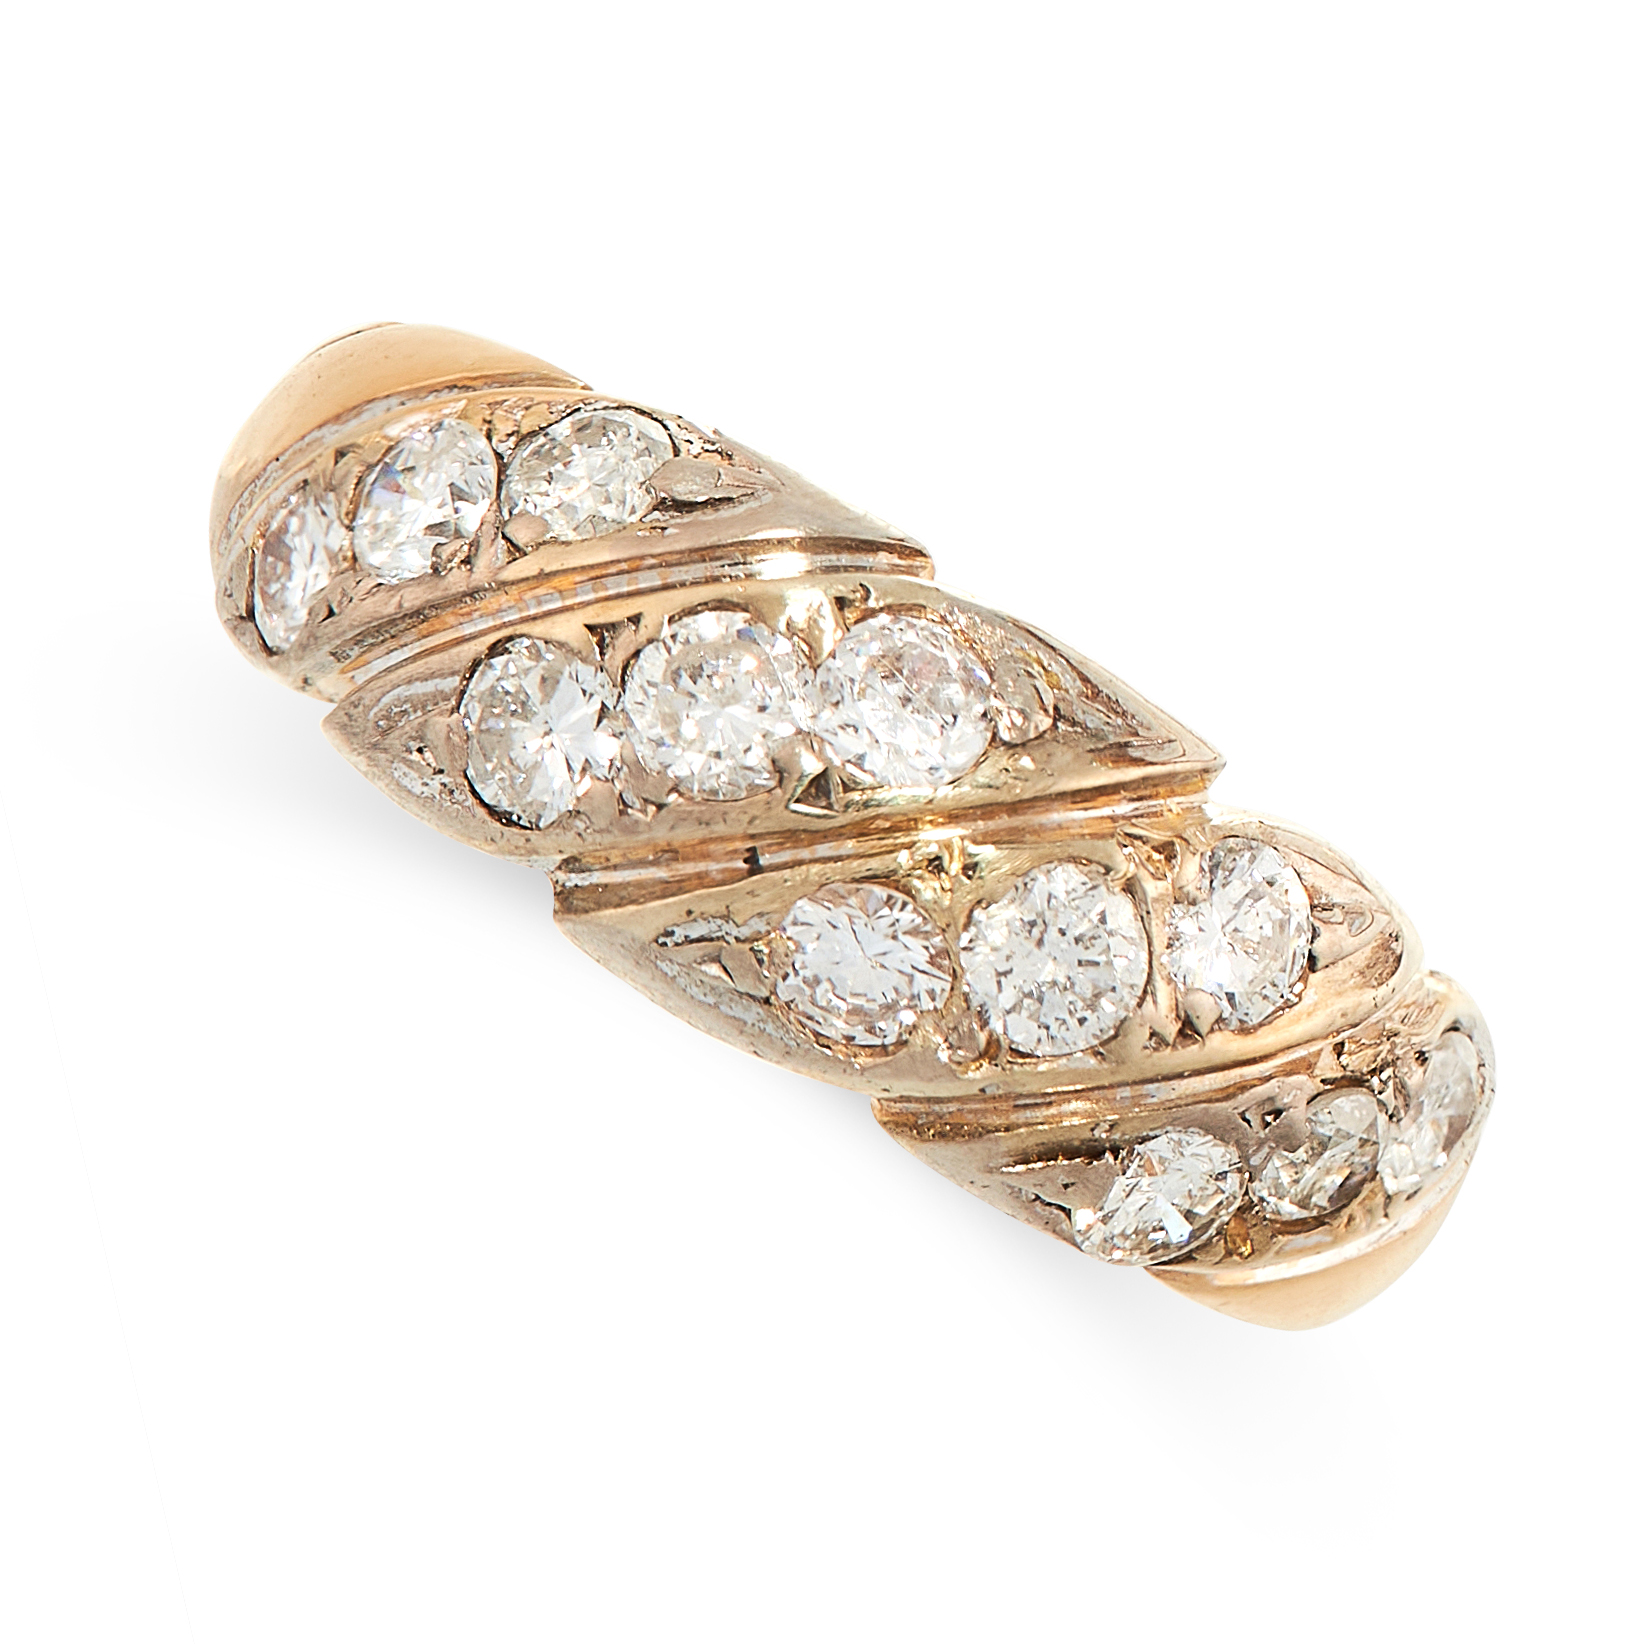 A VINTAGE DIAMOND DRESS RING in yellow gold, the tapered band set with rows of round cut diamonds,